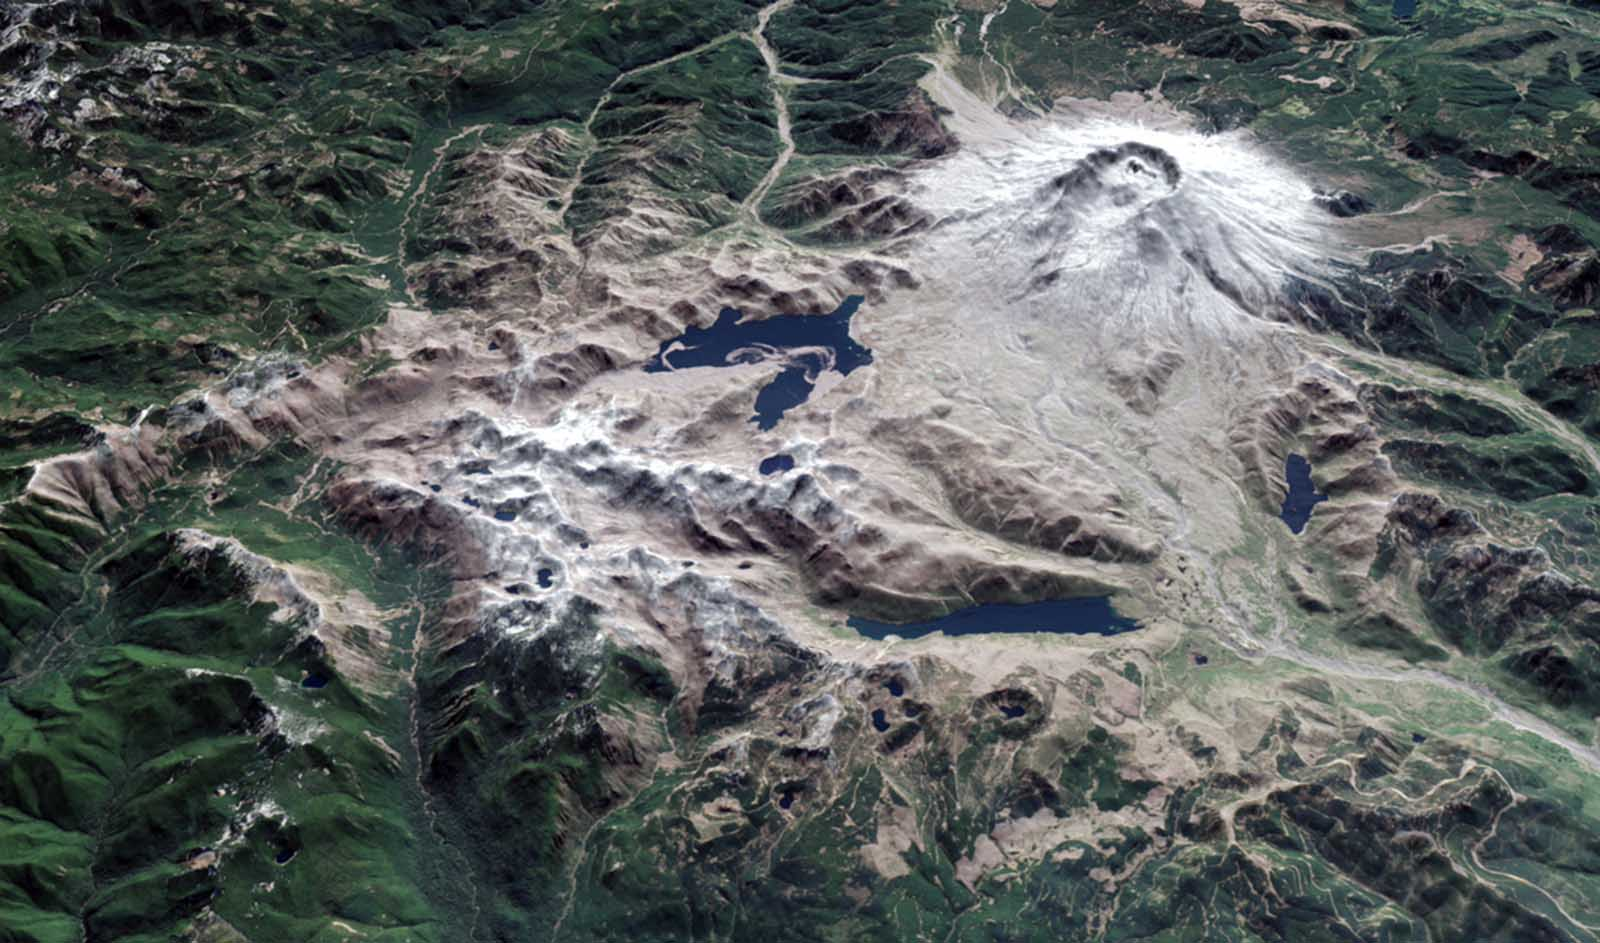 Satellites in orbit and scientists on the ground still monitor the mountain and track the recovery of Mt. St. Helens. This image shows a three-dimensional view of the mountain, looking toward the southeast, as it appeared on April 30, 2015. The image was assembled from data acquired by the Operational Land Imager on Landsat 8 and the Advanced Spaceborne Thermal Emission and Reflection Radiometer (ASTER) on Terra.